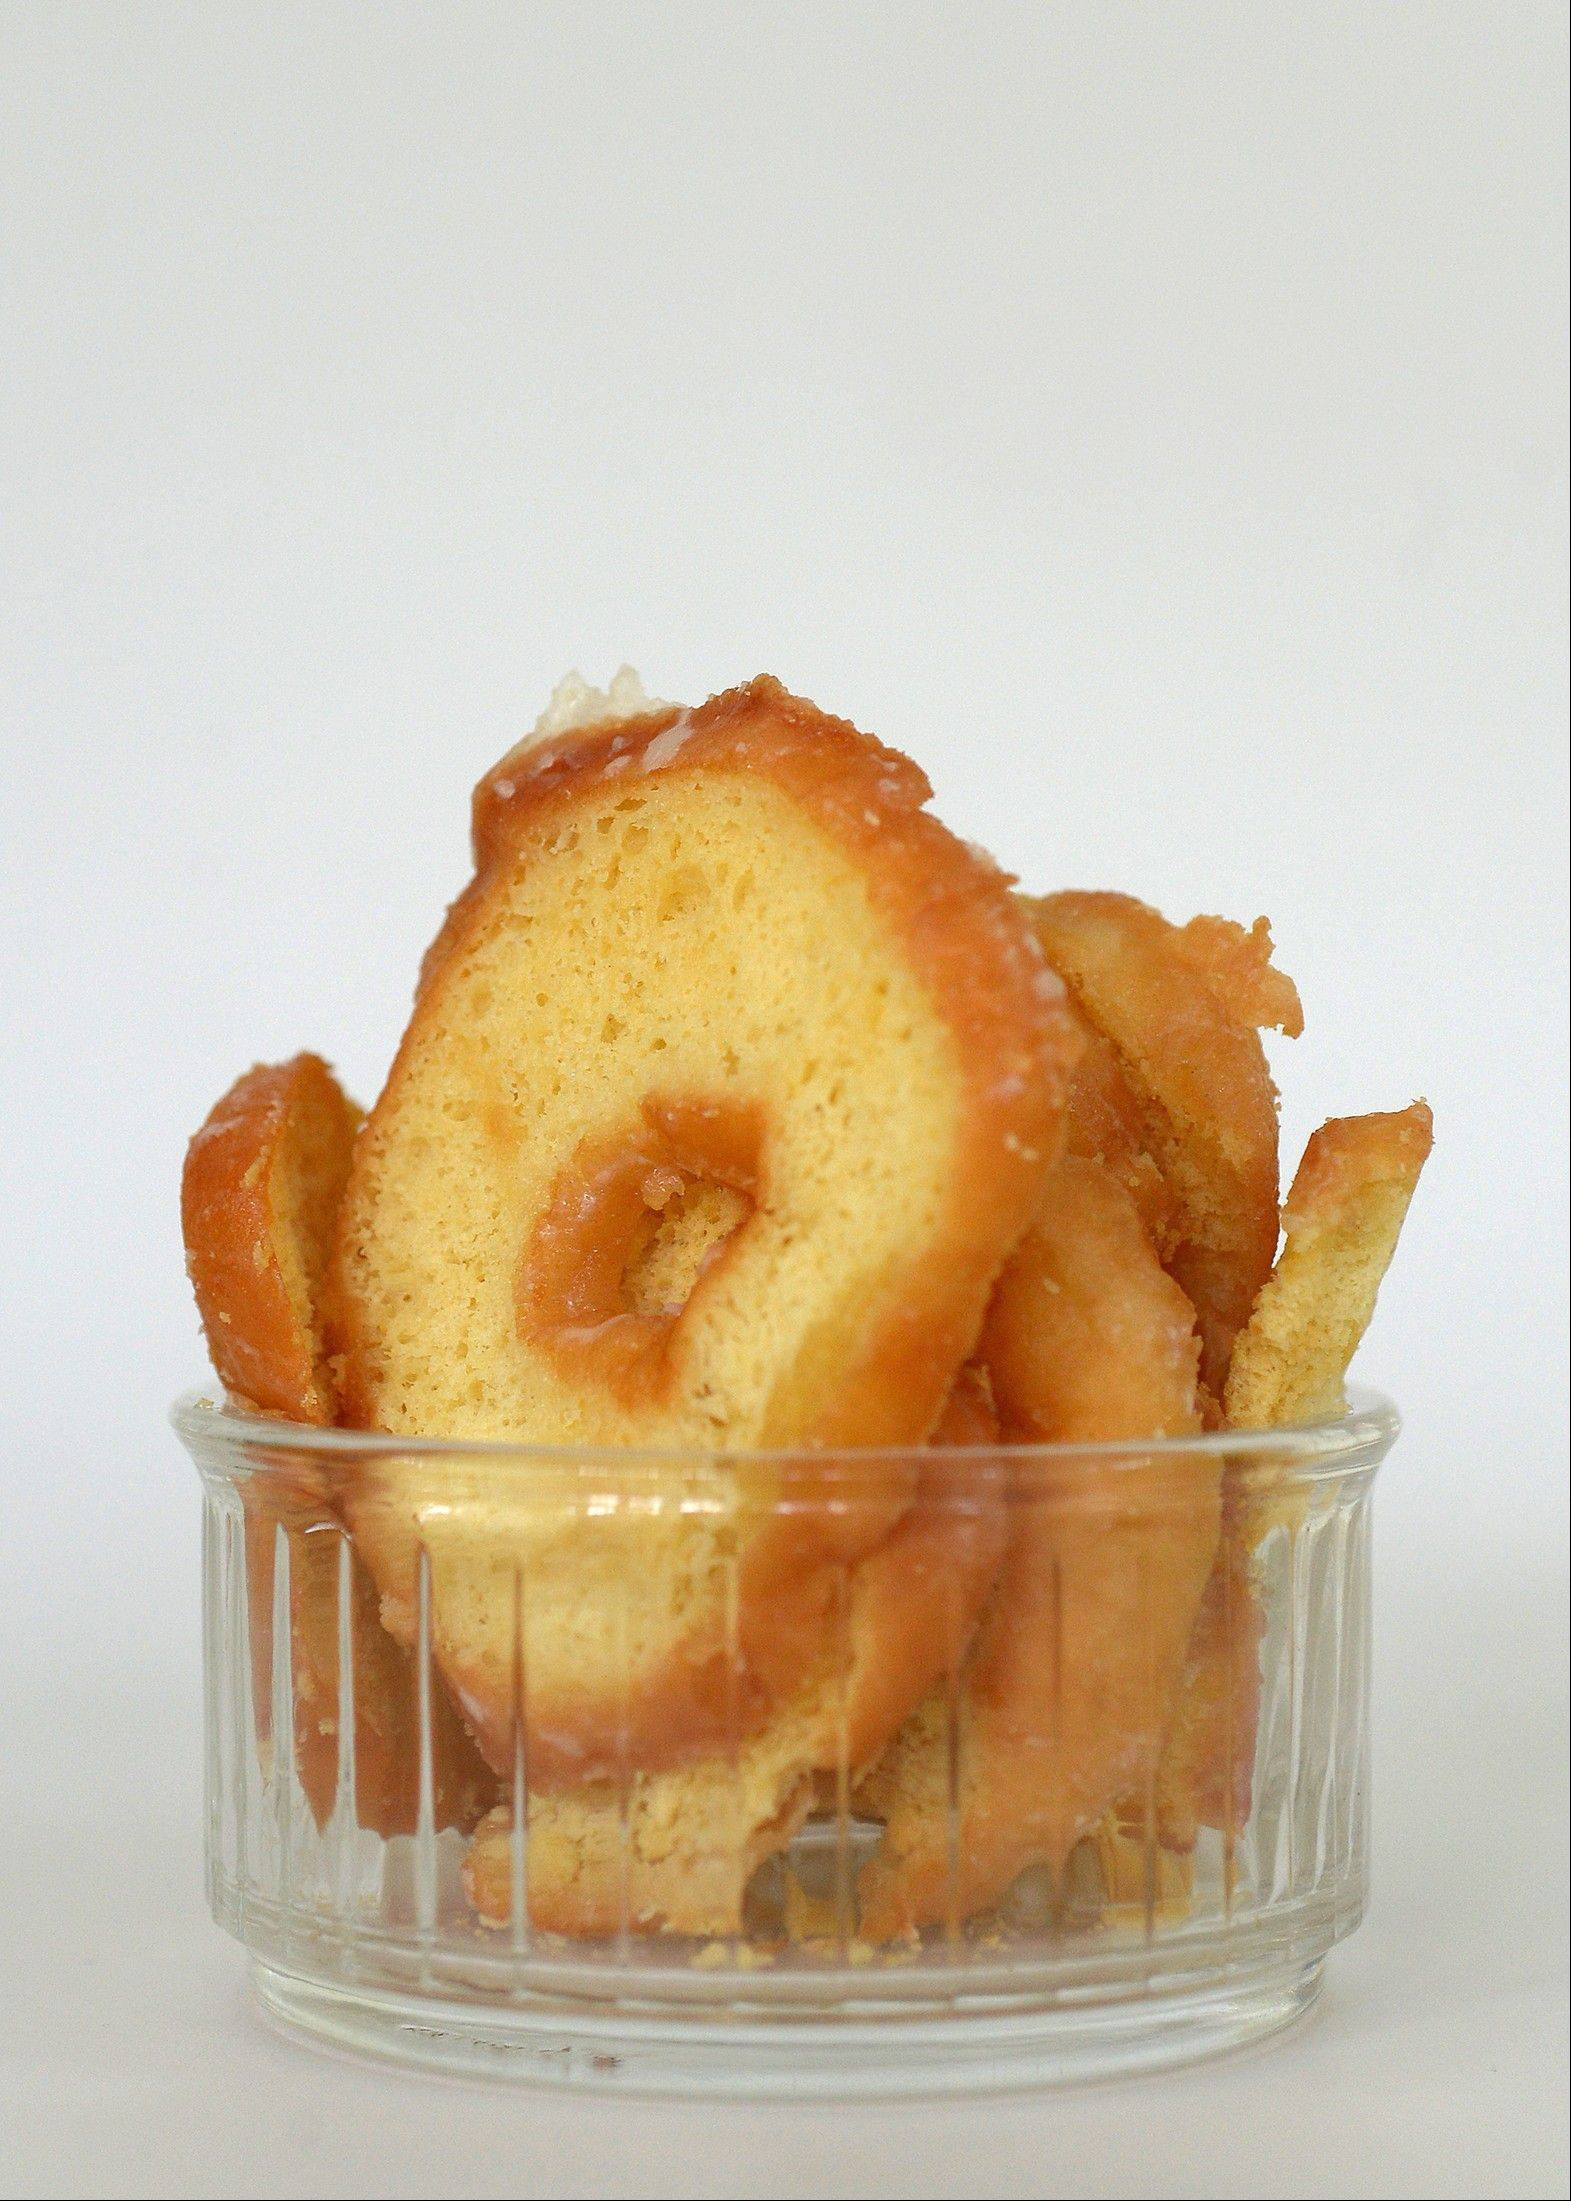 Doughnut crisps are one way to use up leftover doughnuts.